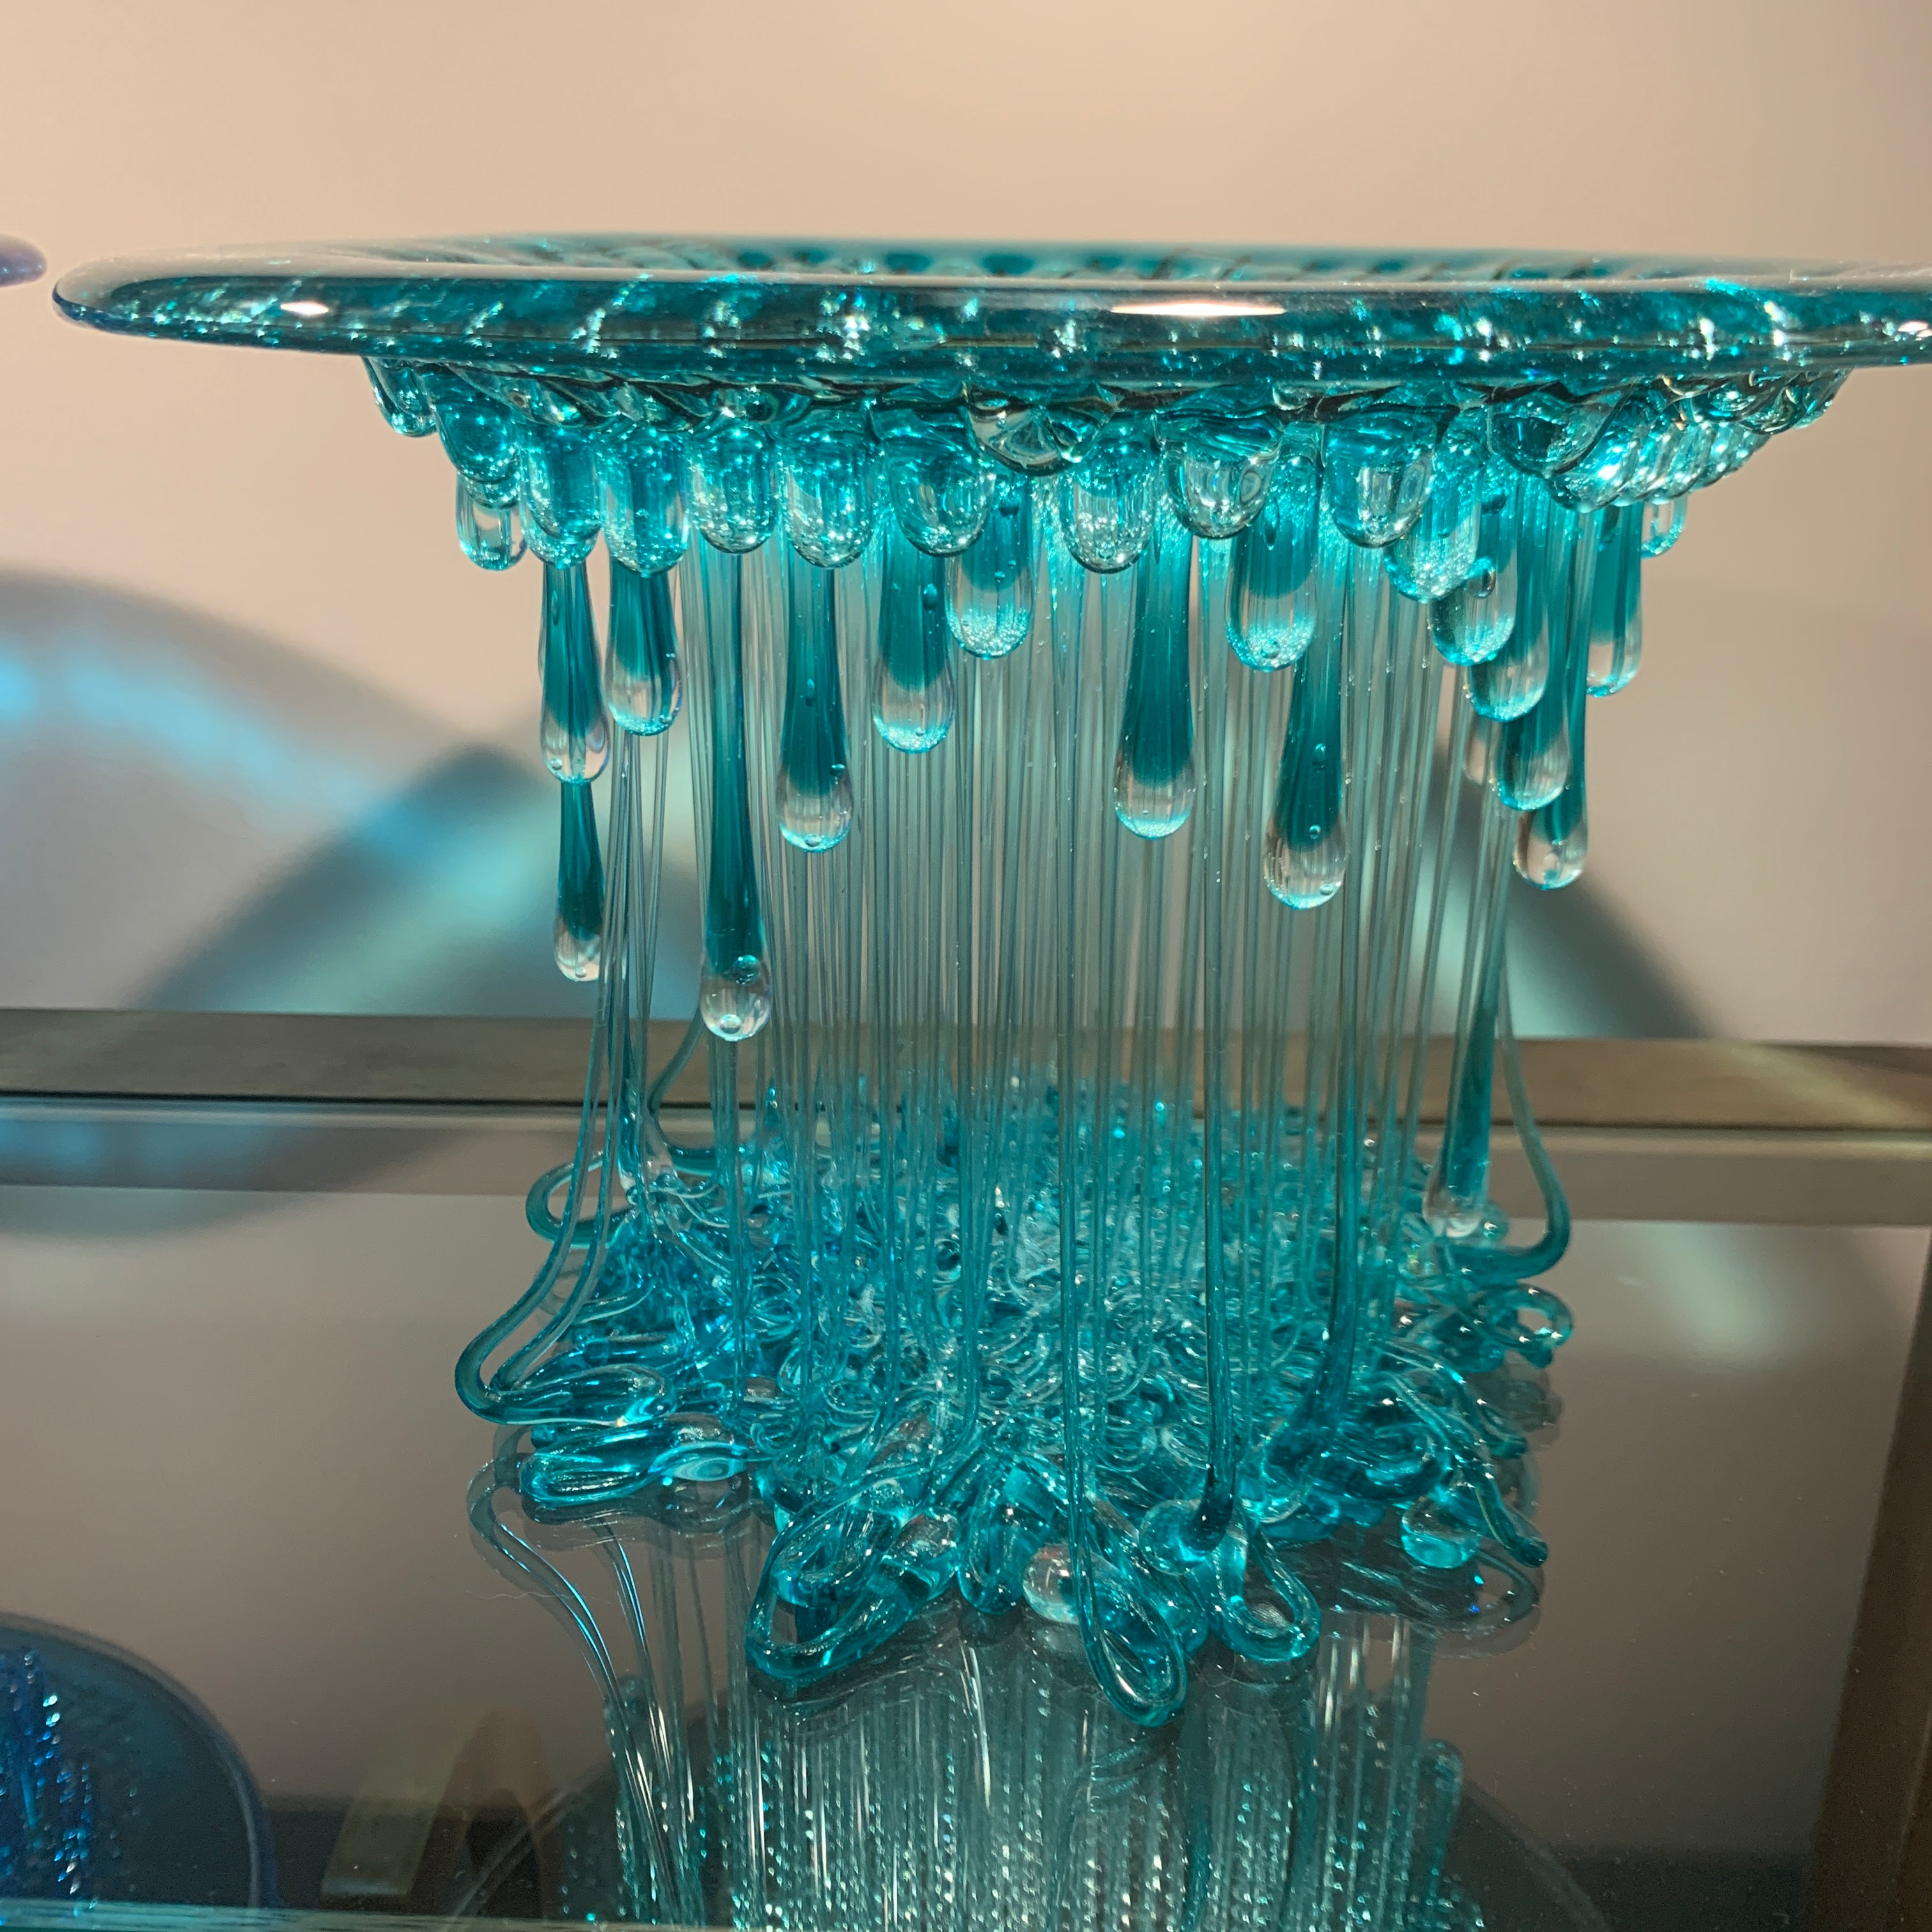 Turquoise Dripping Glass Jellyfish